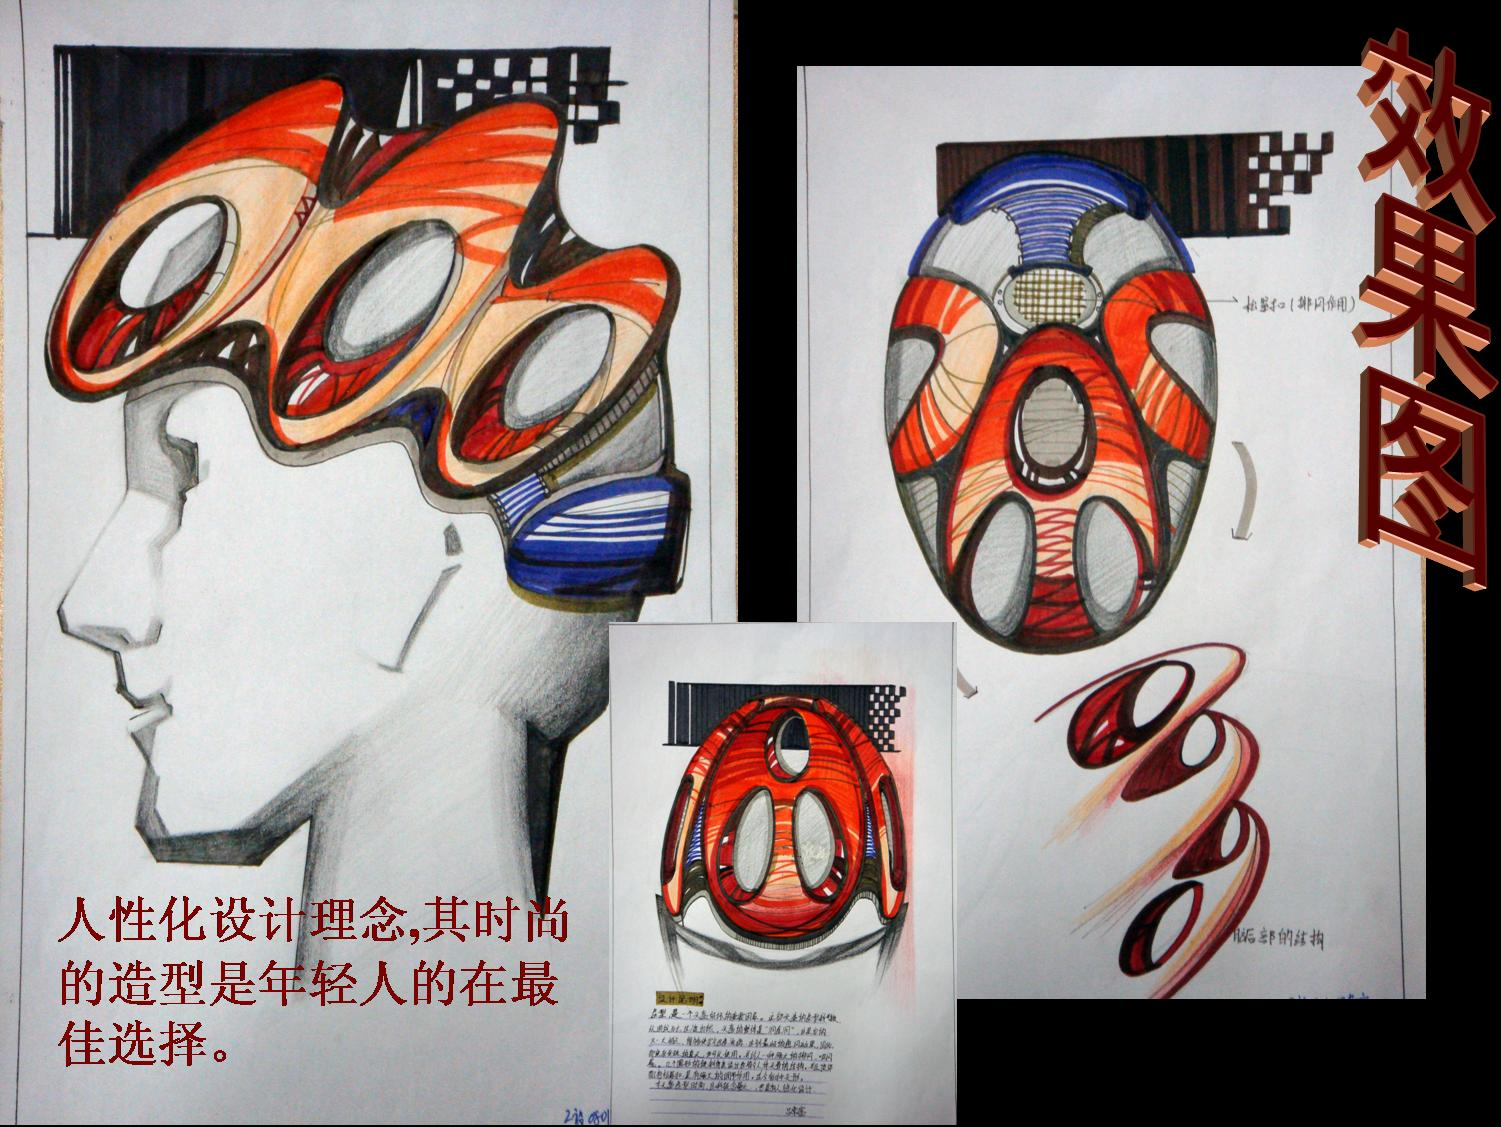 First prize went to ultra-modern.  Helmet Design Competition, Jiangnan University, Wuxi, China